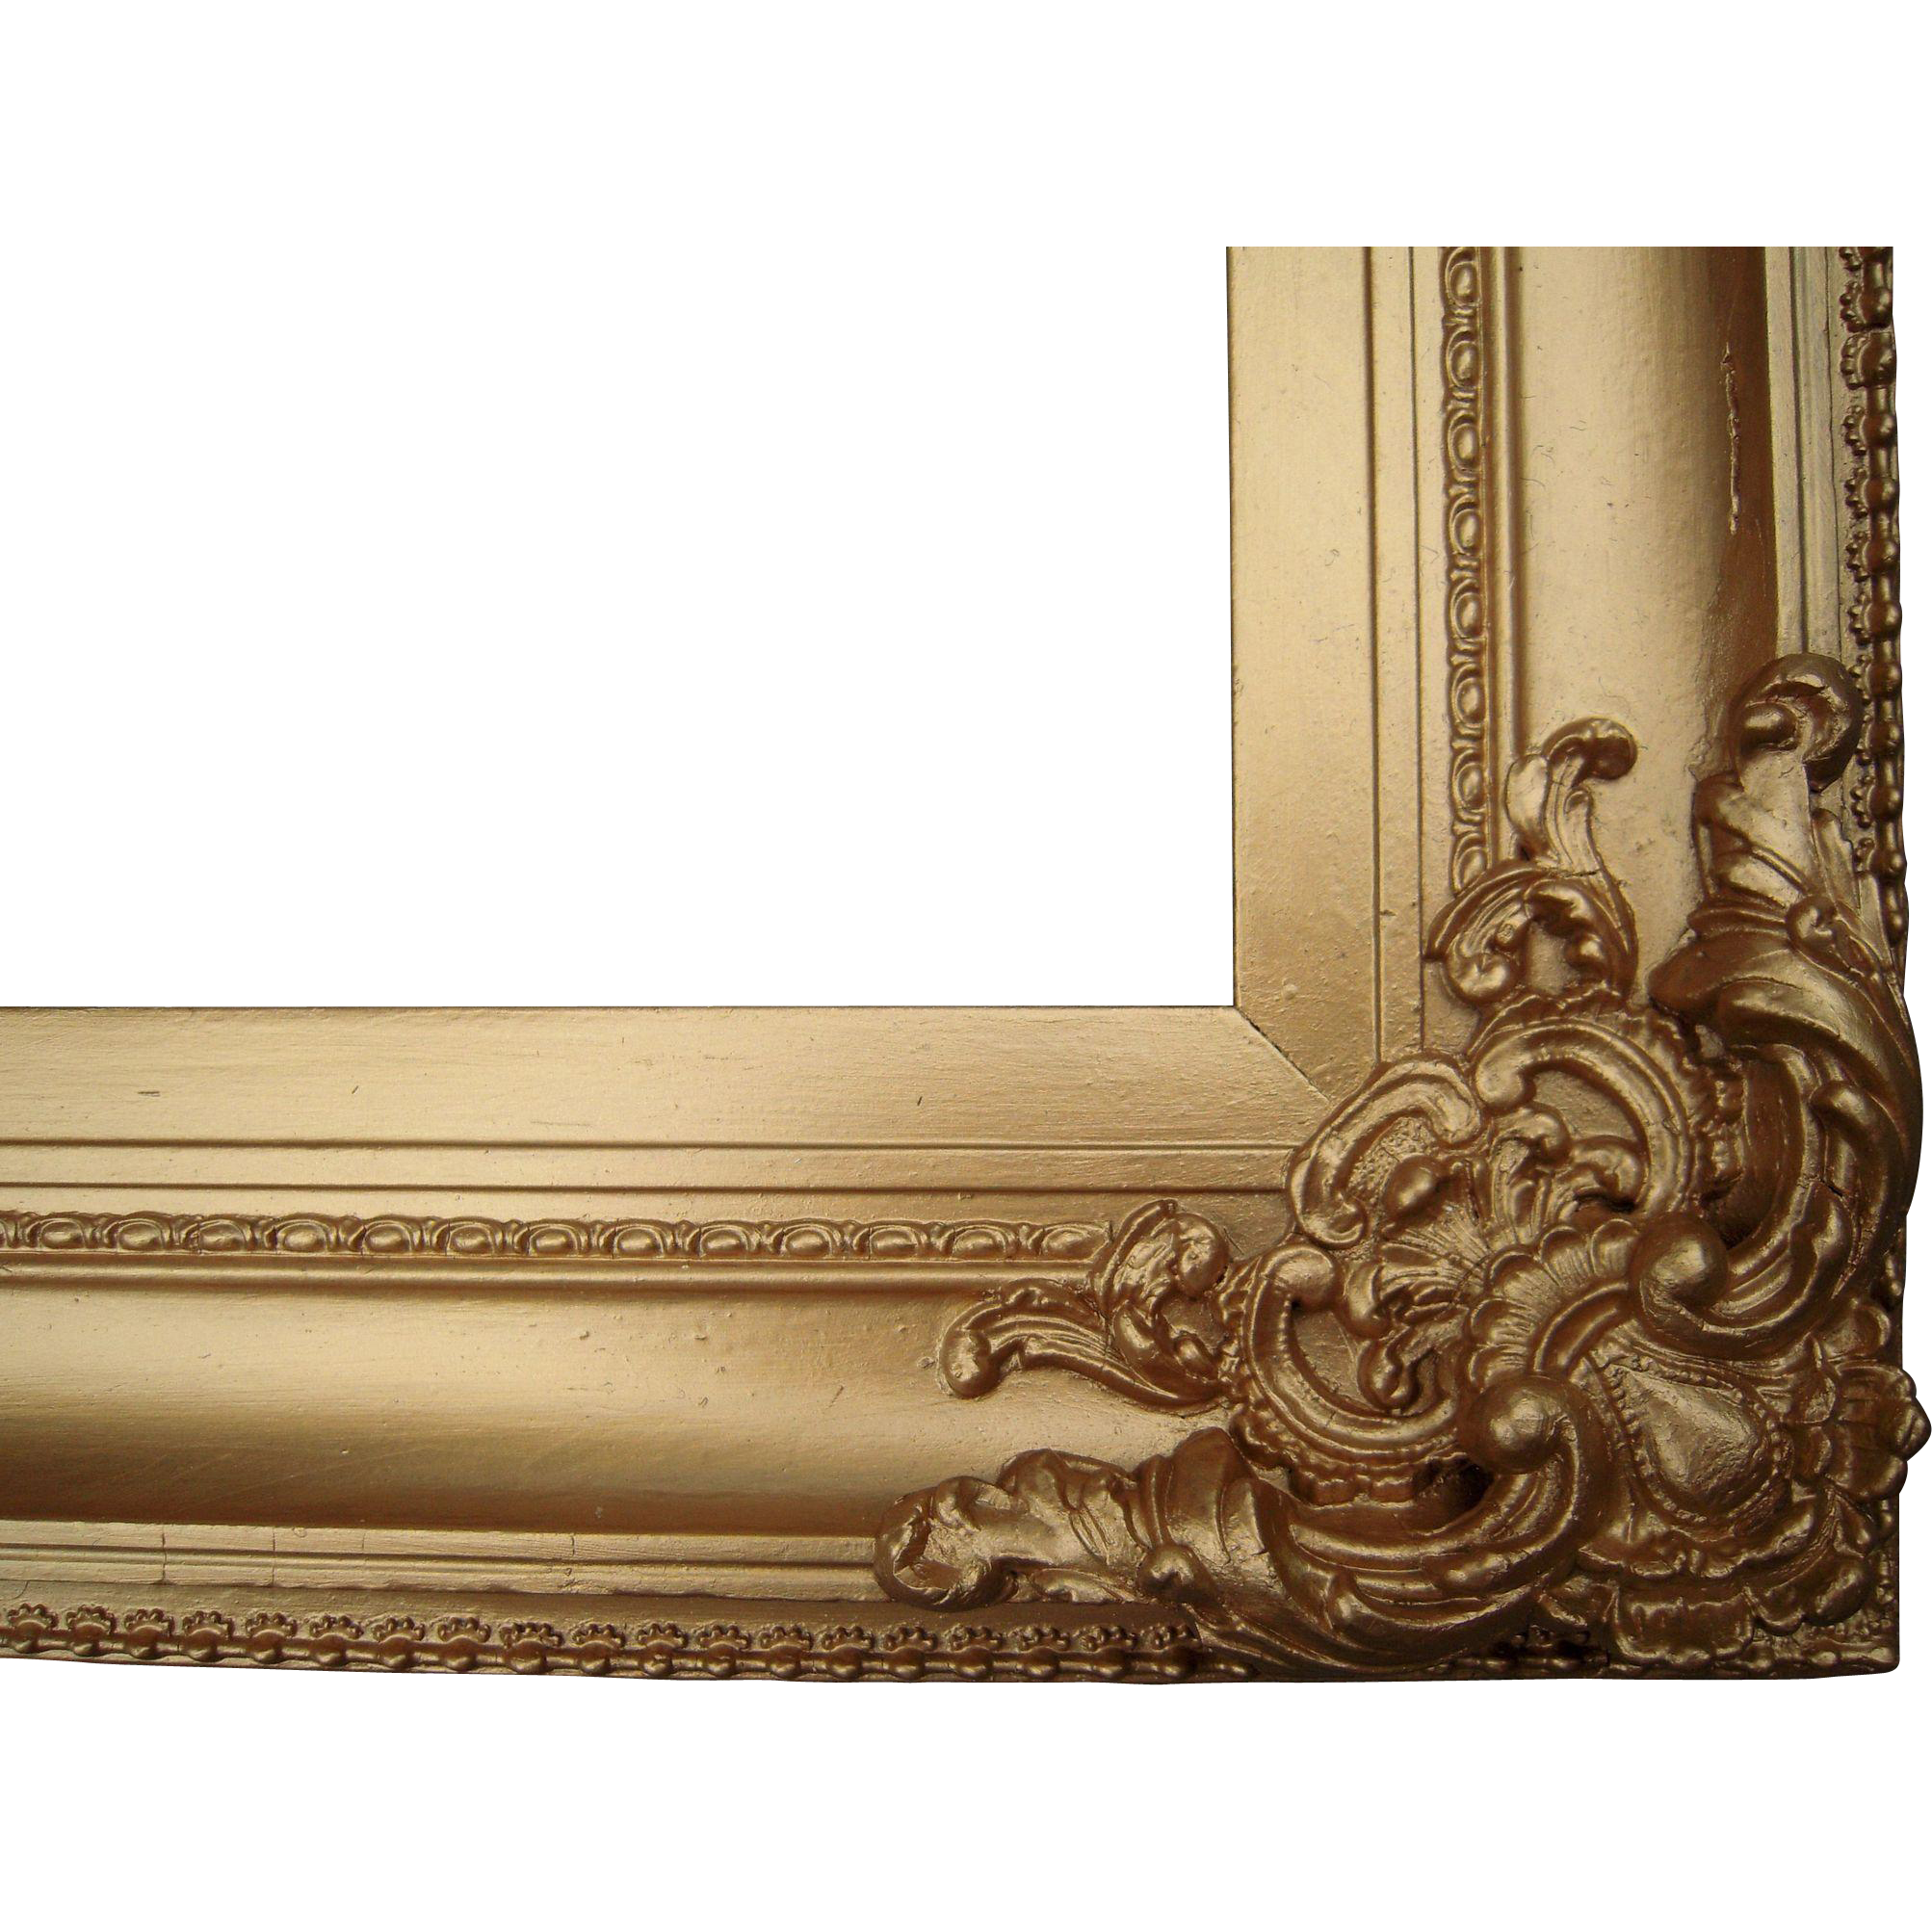 "Large Ornate Gold Victorian Picture Frame 20"" x 25"" : Blue ..."